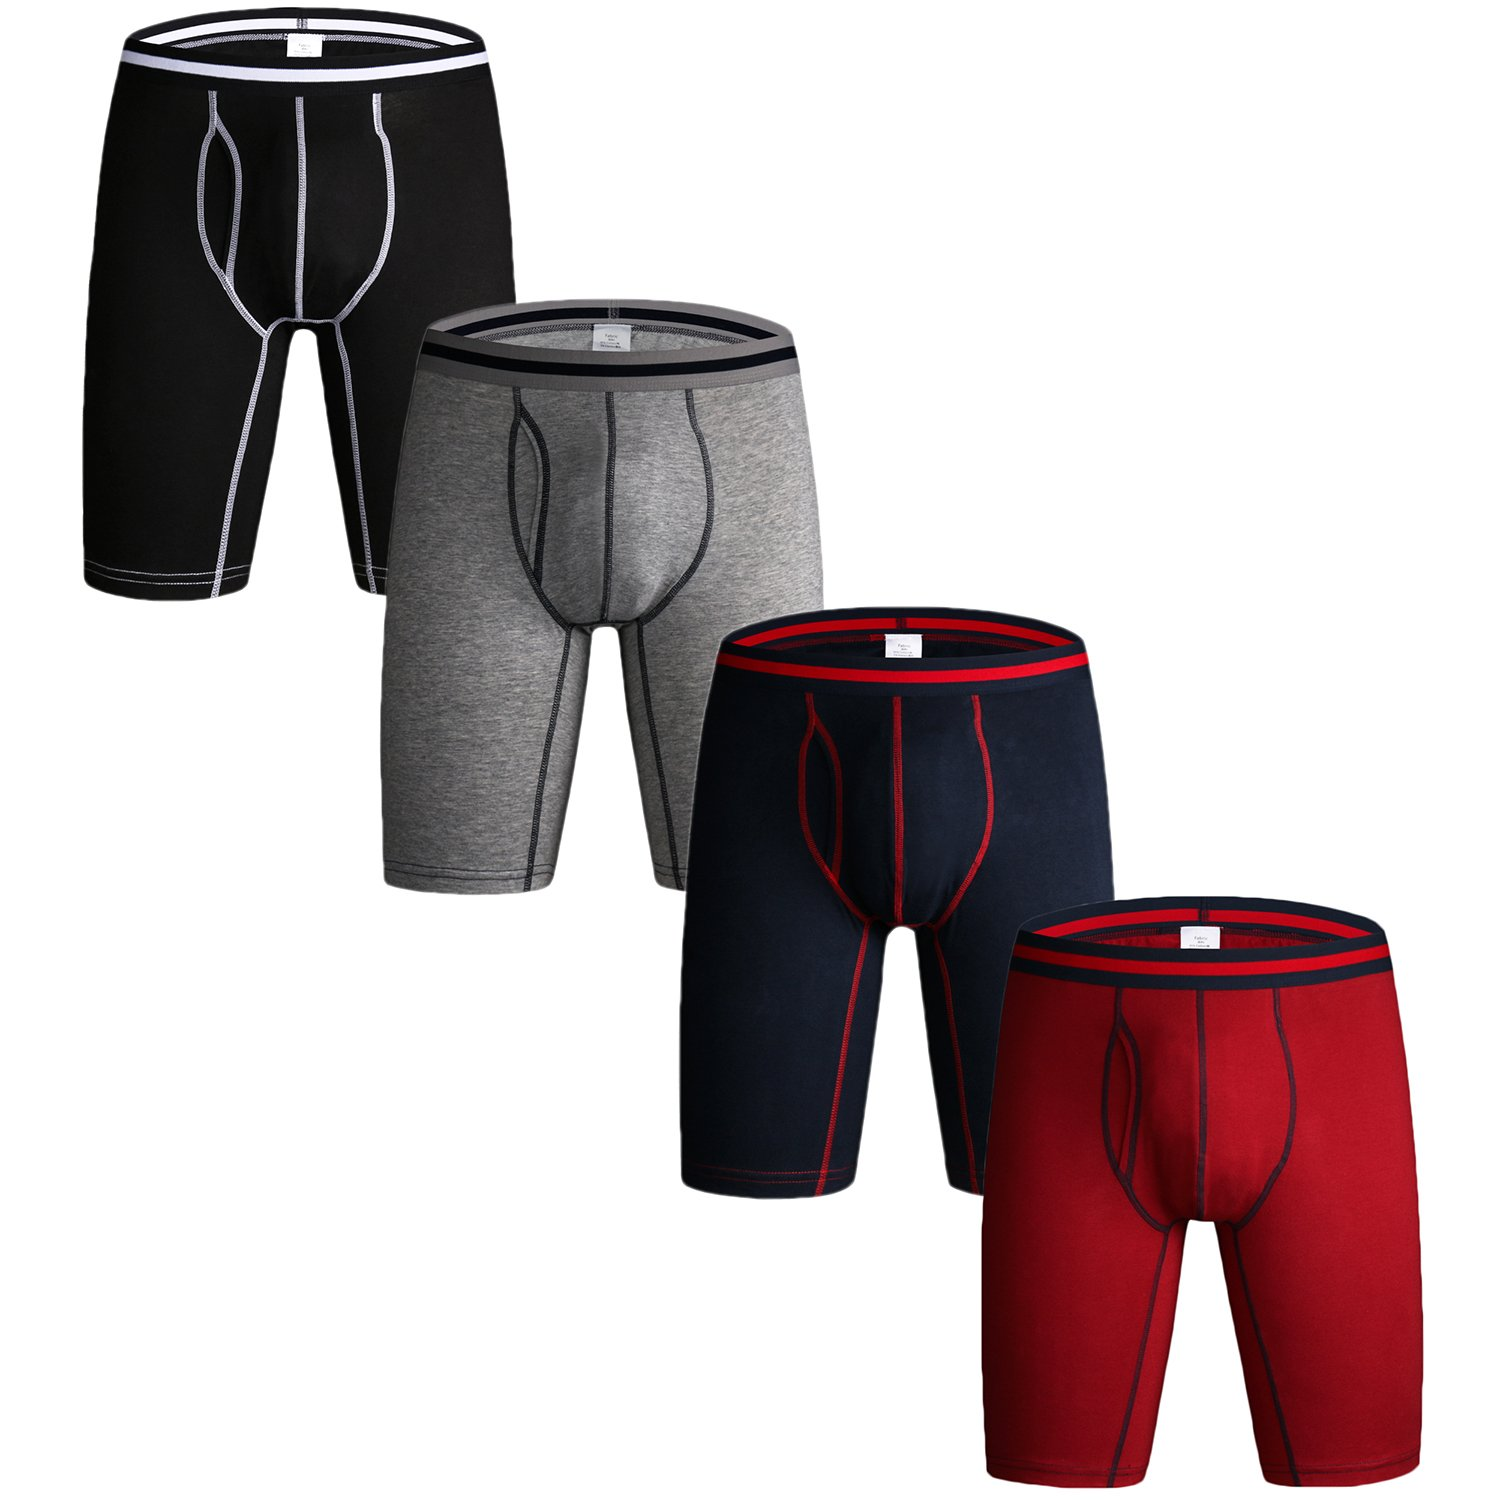 Nuofengkudu Pack of 3 & 4 Men's Long Leg Boxer Shorts Briefs Cotton Multipack Open Fly Pouch Sports Underpants Underwear Assorted